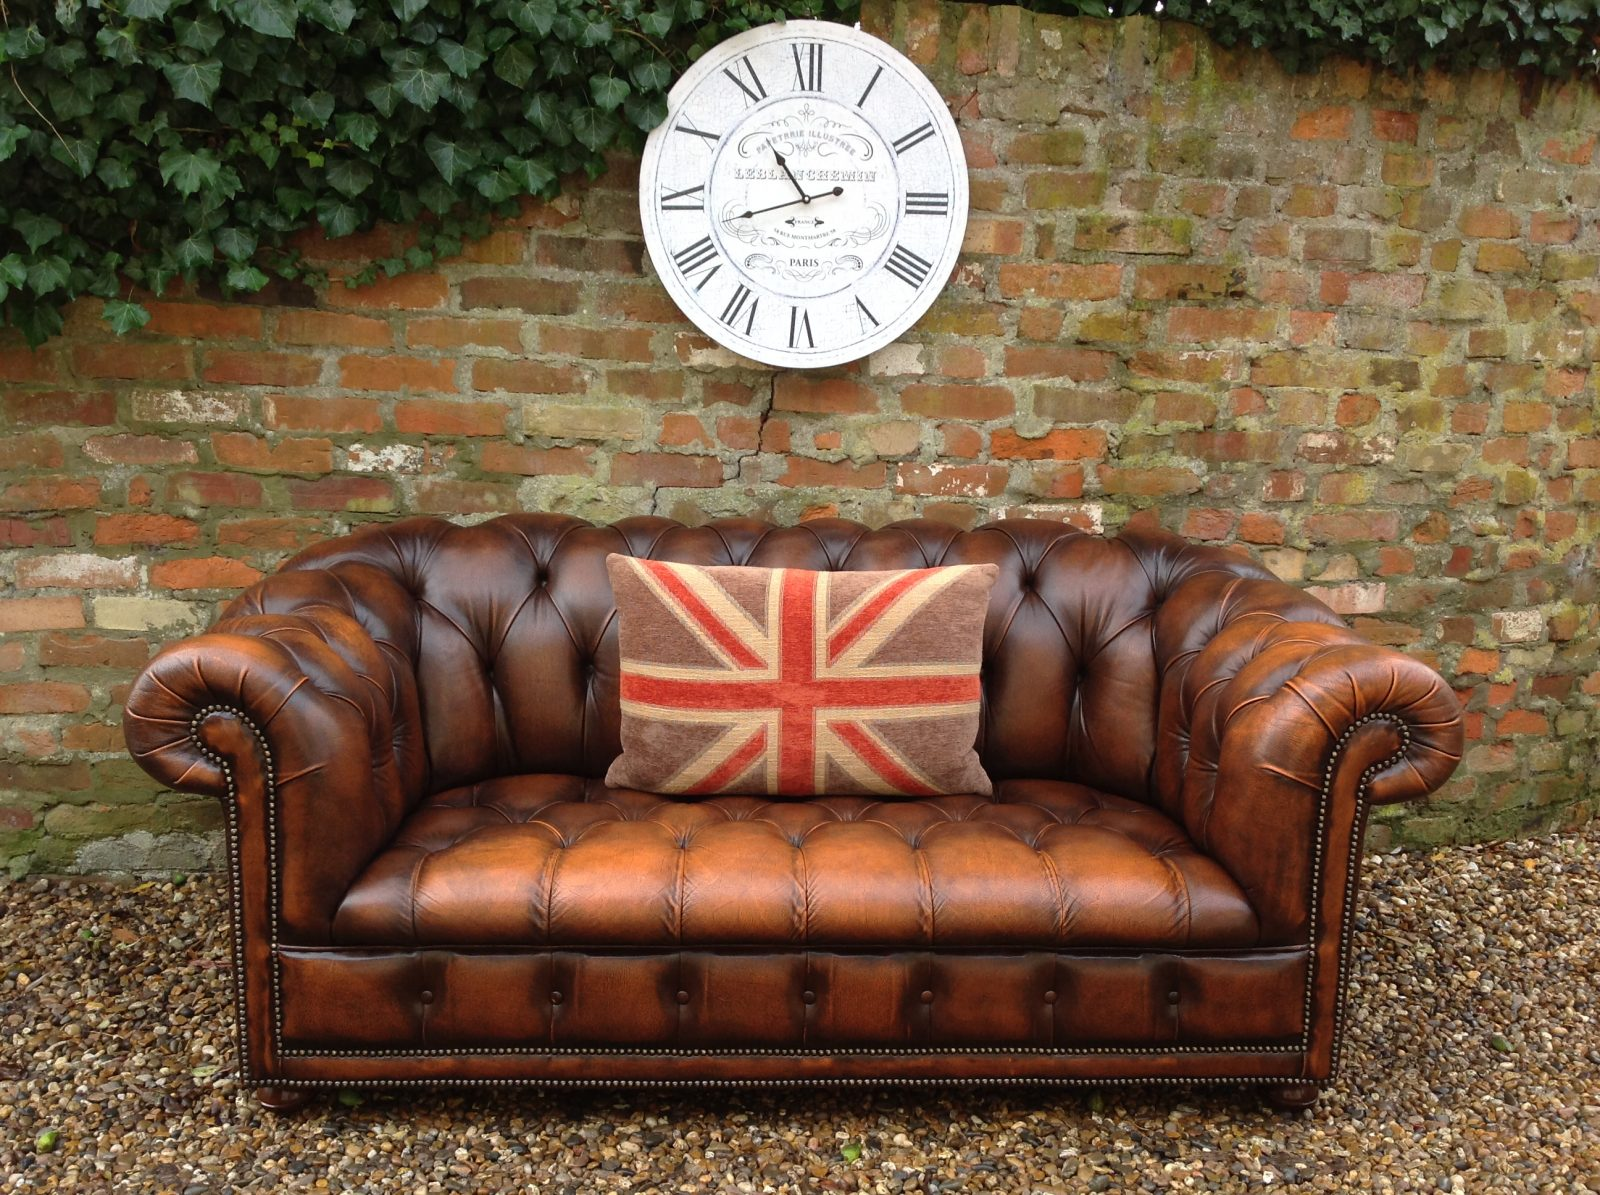 Stunning Antique Gold Large 2 Seater Chesterfield Sofa.